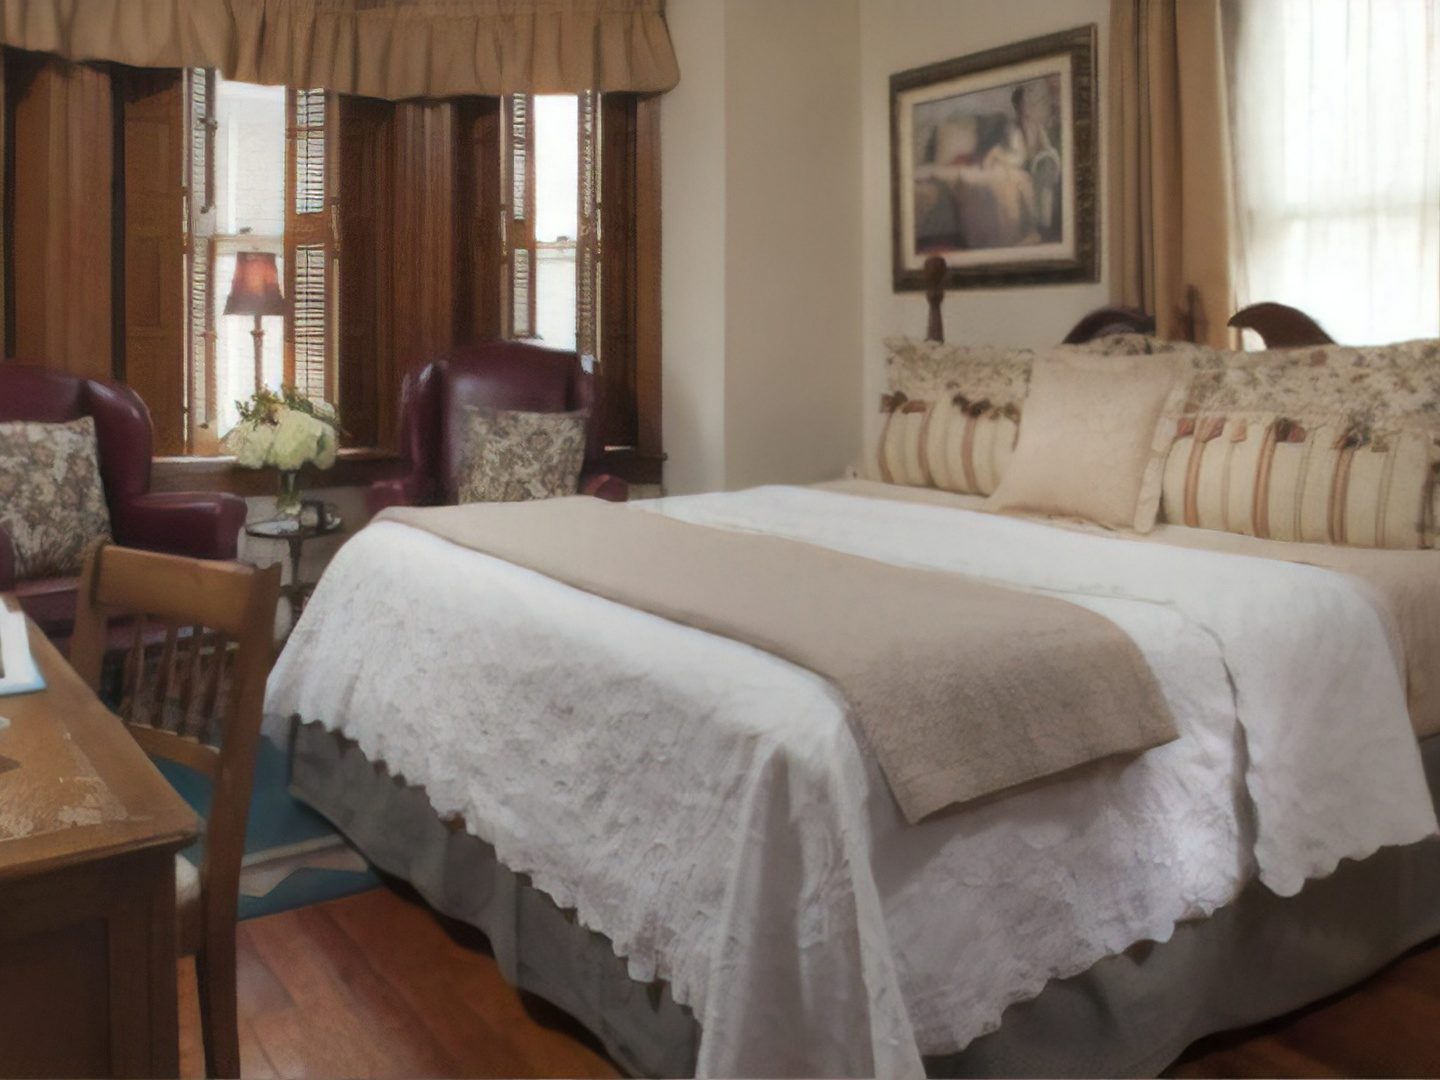 A bedroom with a bed and desk in a hotel room at Harvest Moon Bed & Breakfast.